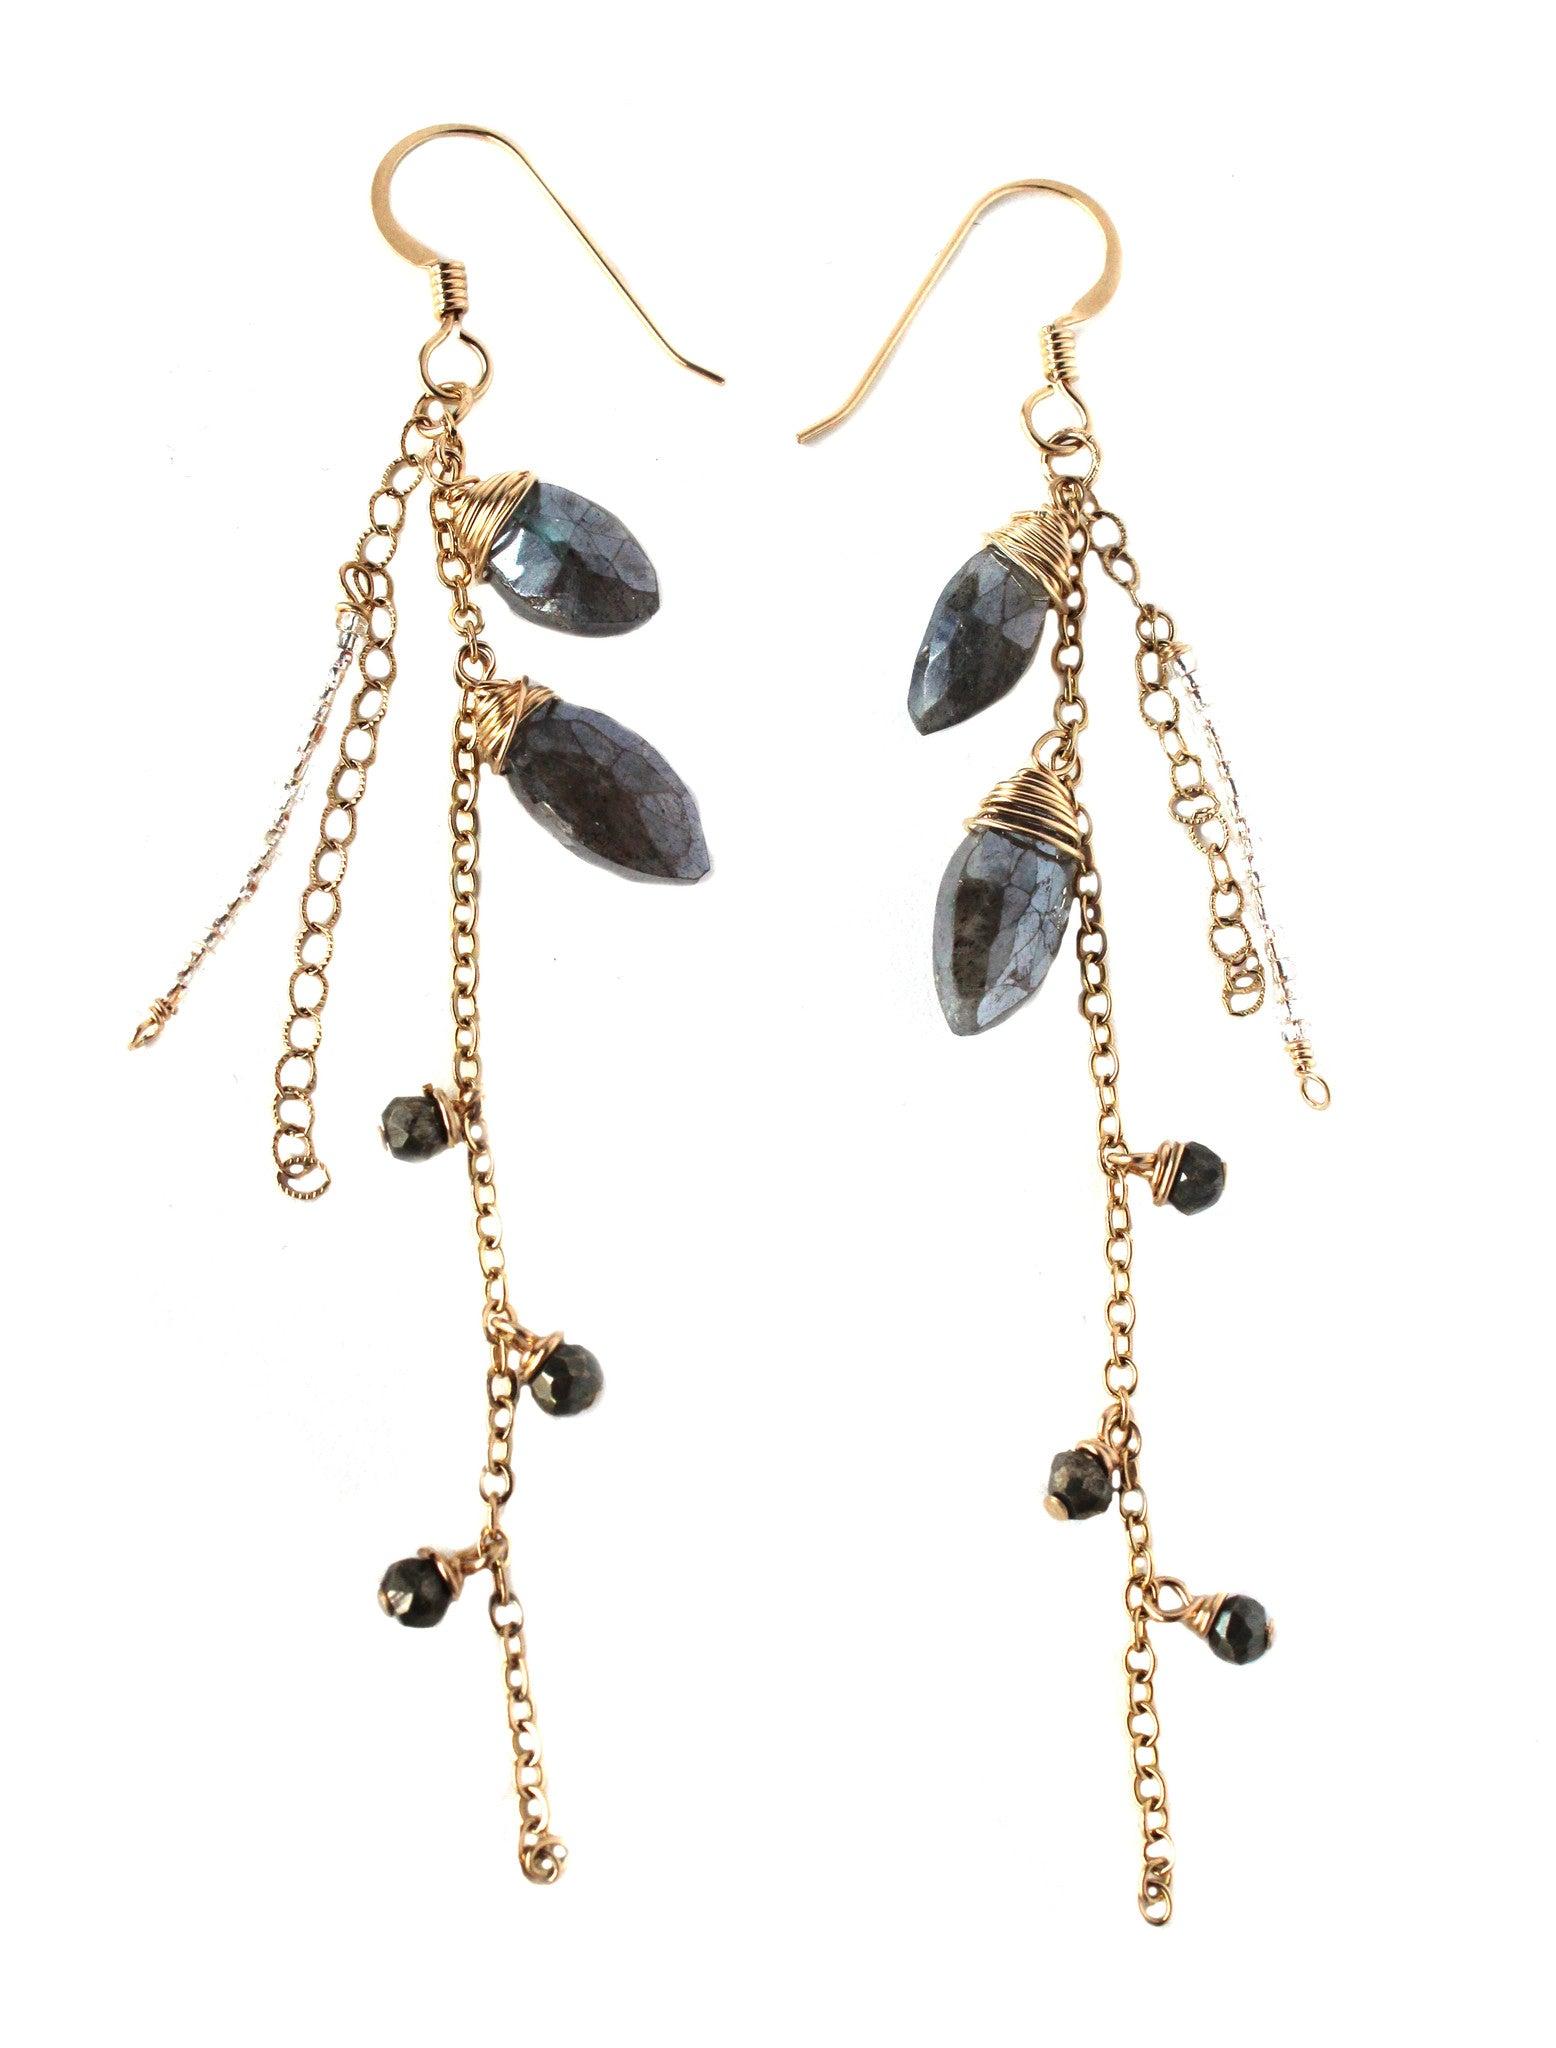 Cascading Labradorite Earrings / Handmade Jewelry